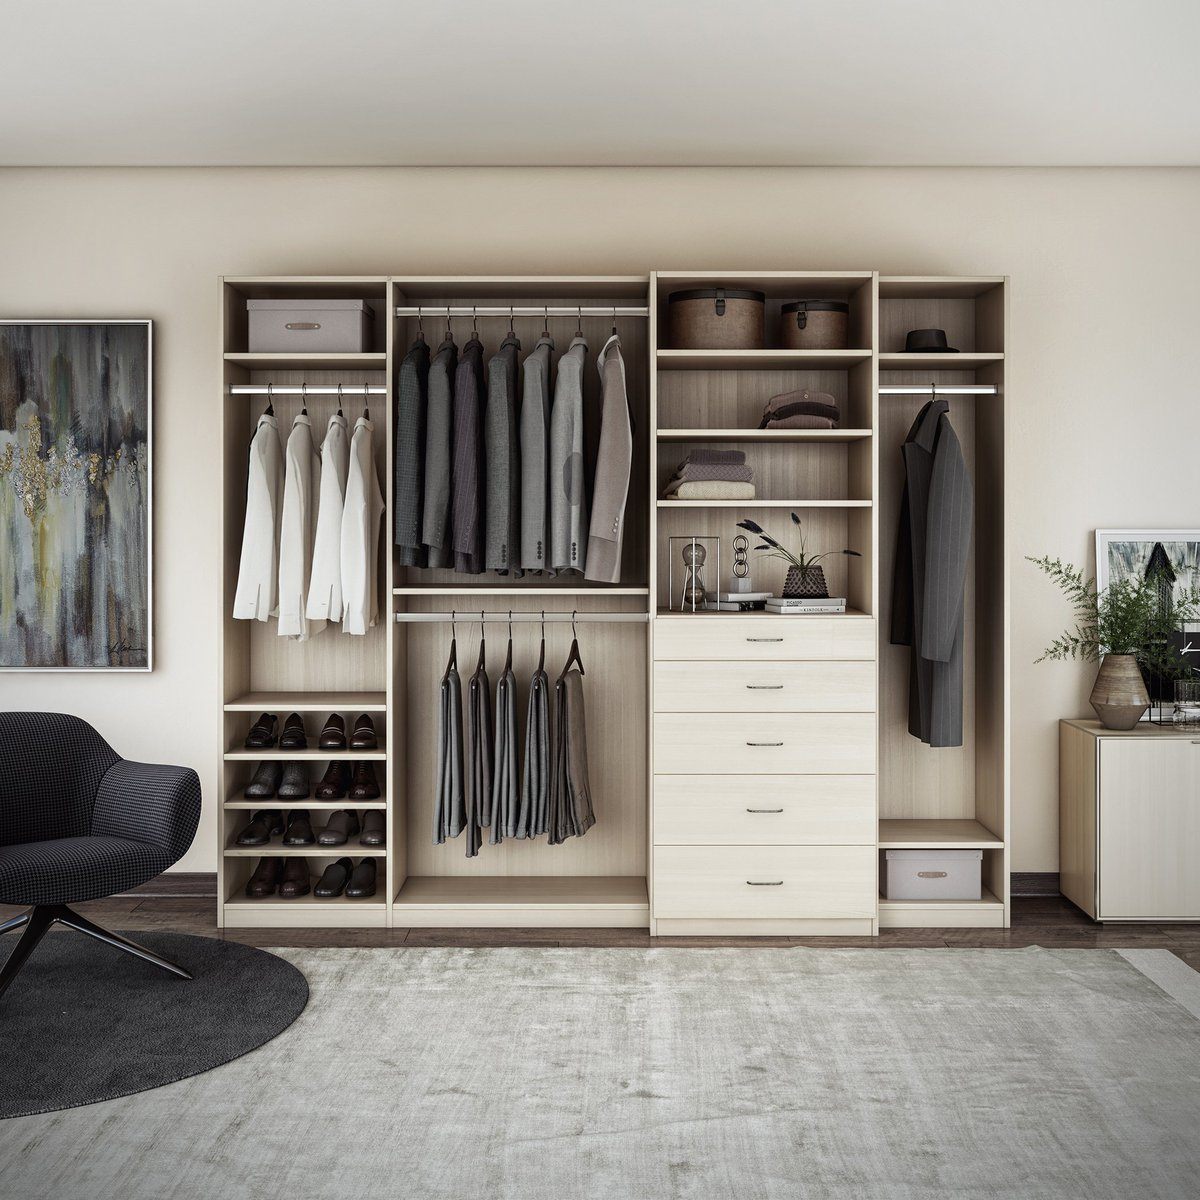 ... Vertical Shelving Can Make Your Small Space Seem Bigger And Taller!  #spacesaving Https://www.closetsbydesign.com/bedroom  Pic.twitter.com/B4Hs8ltopa